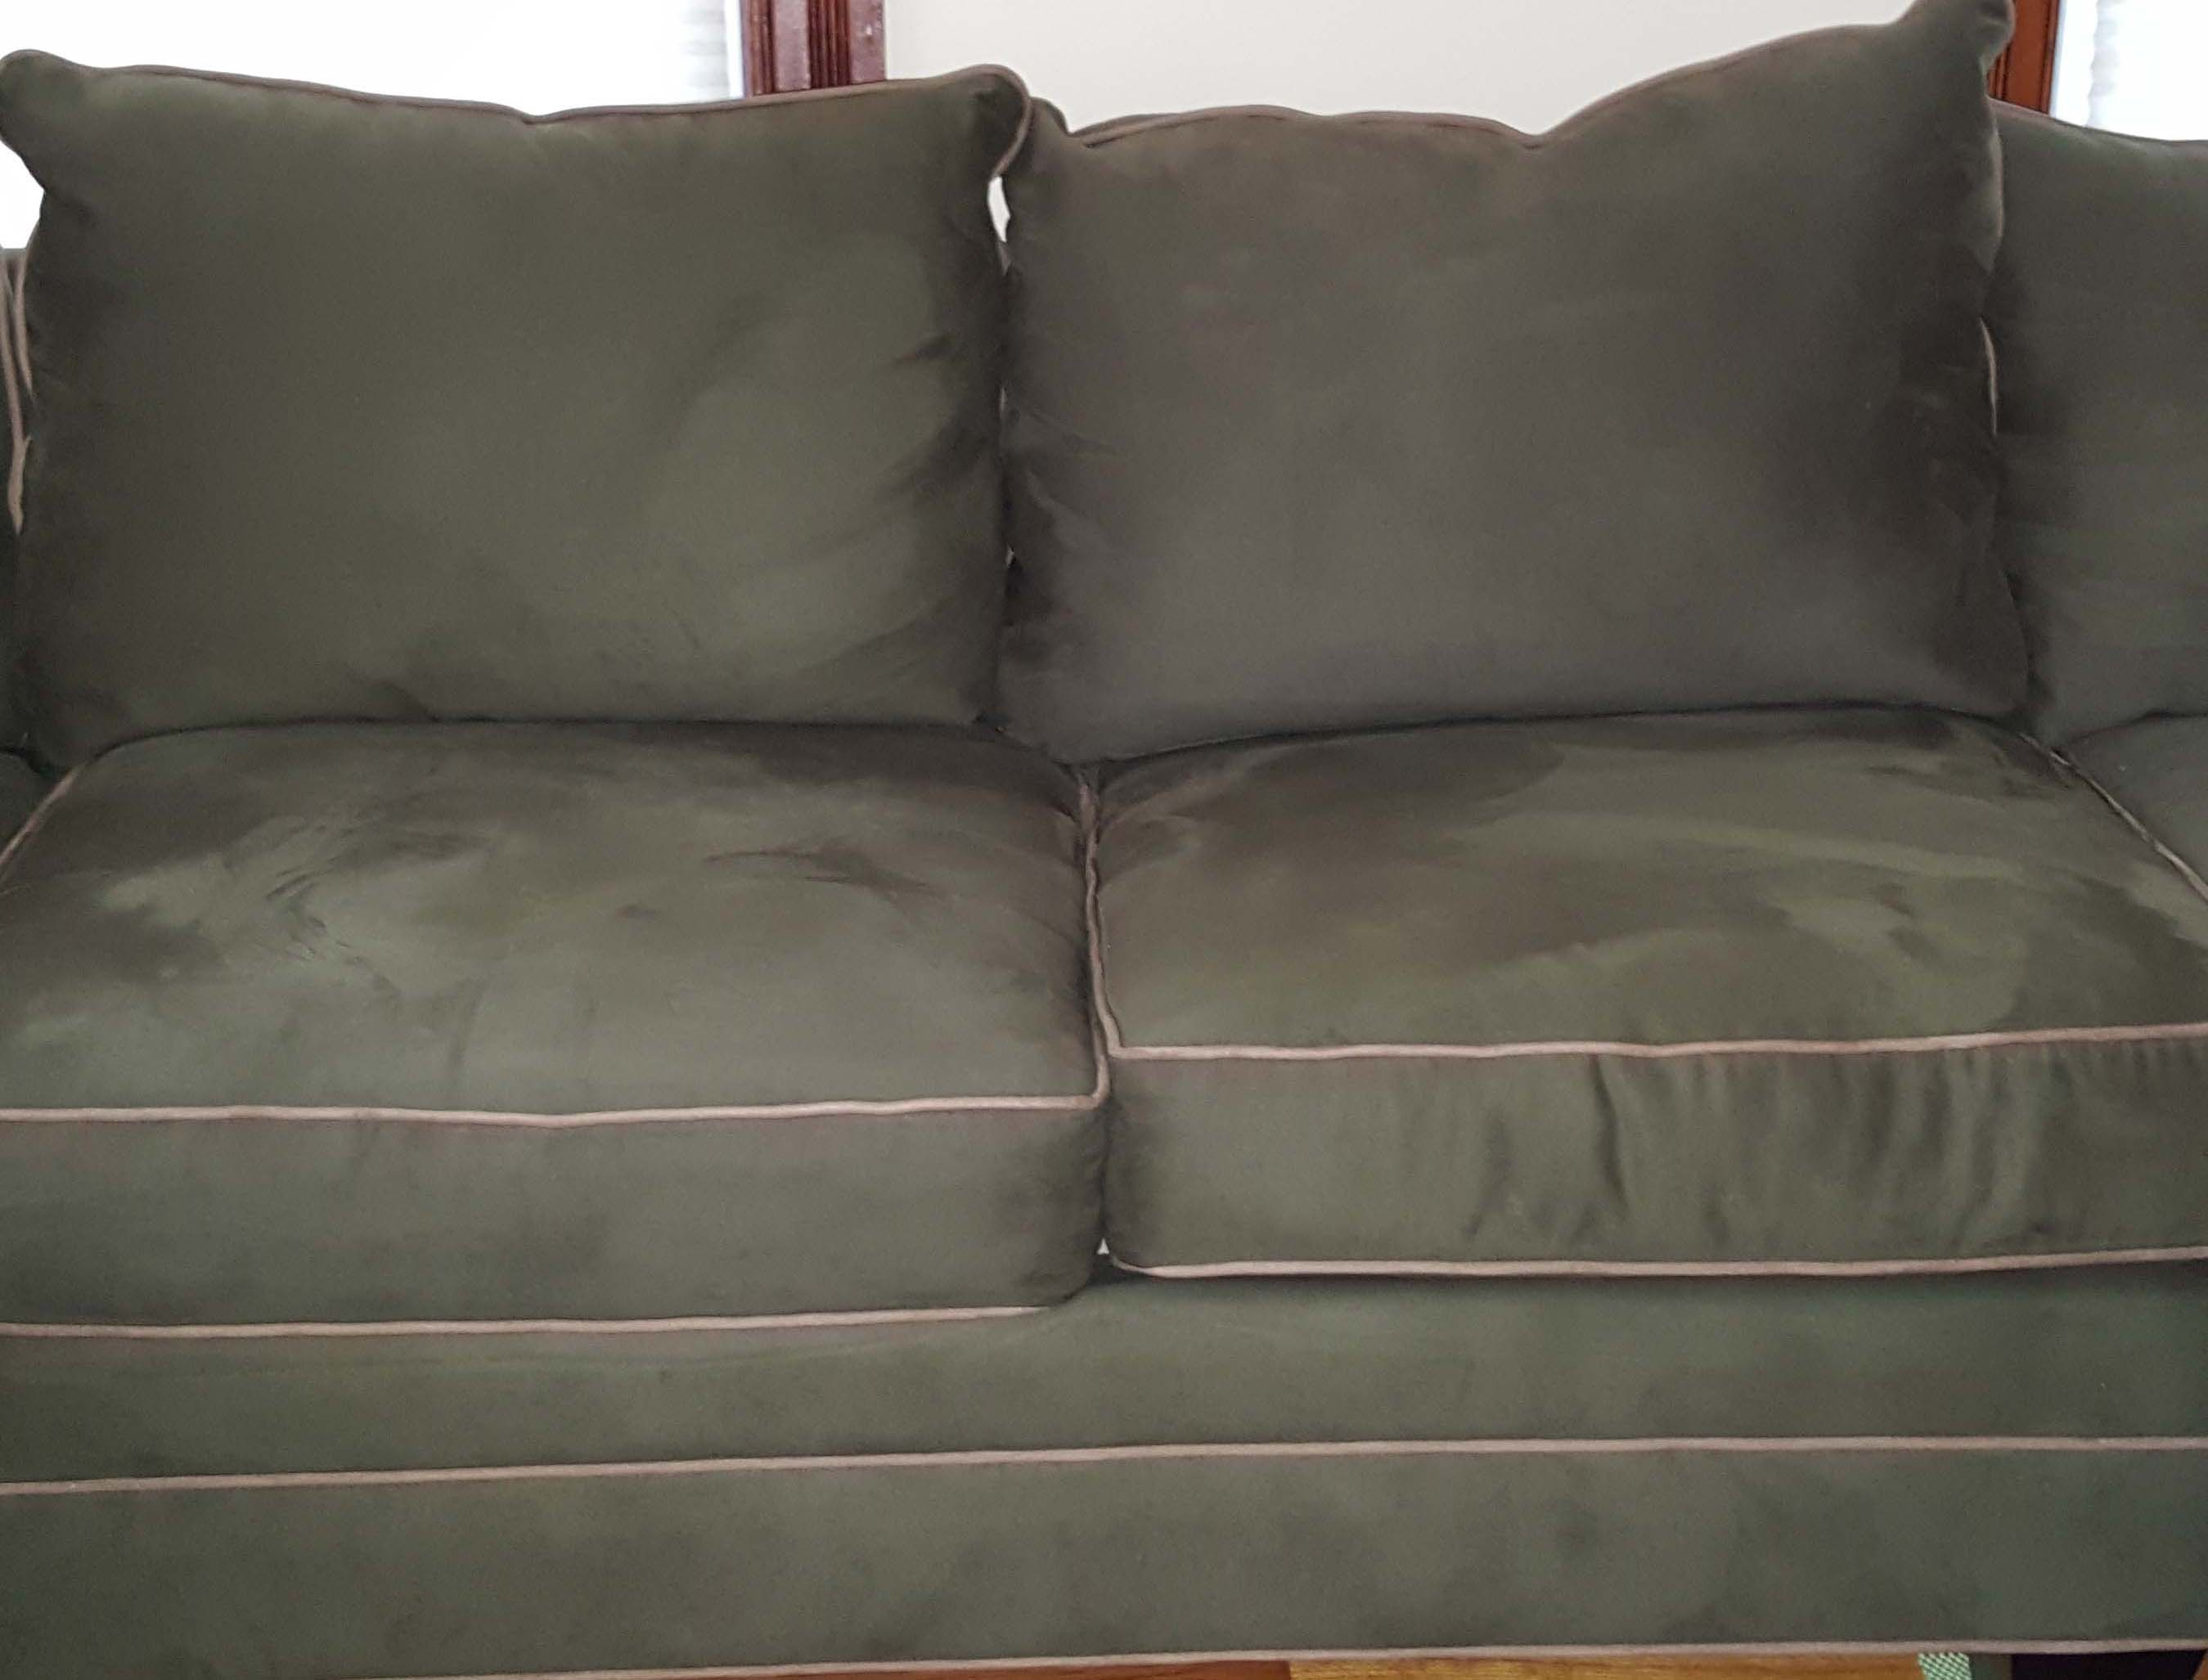 leather cleaner for sofa asda three seater designs nubuck cleaning home the honoroak